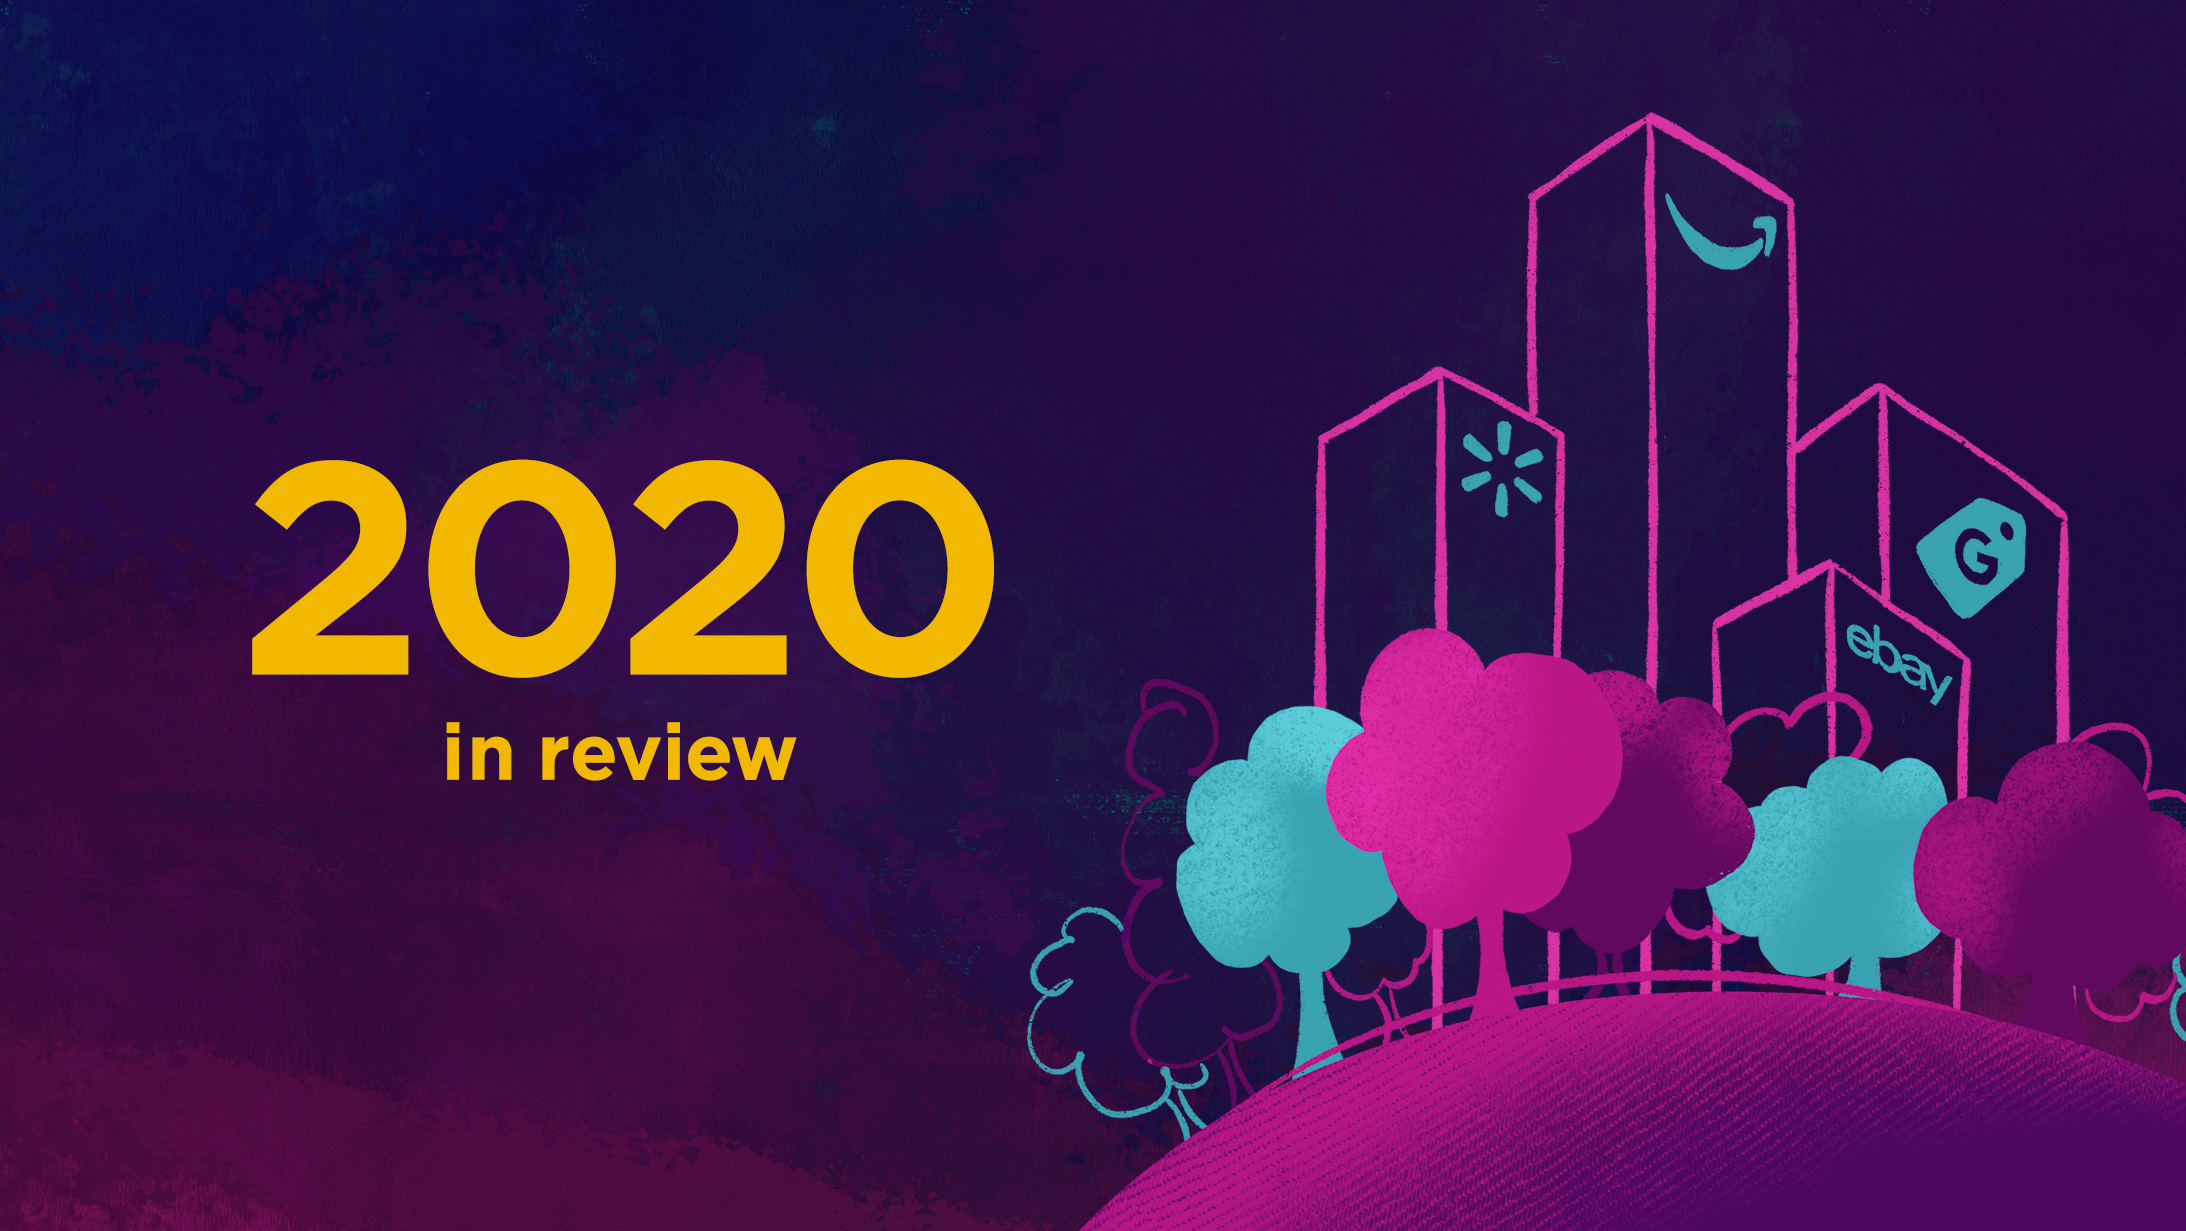 2020 in Review and Our Vision for 2021